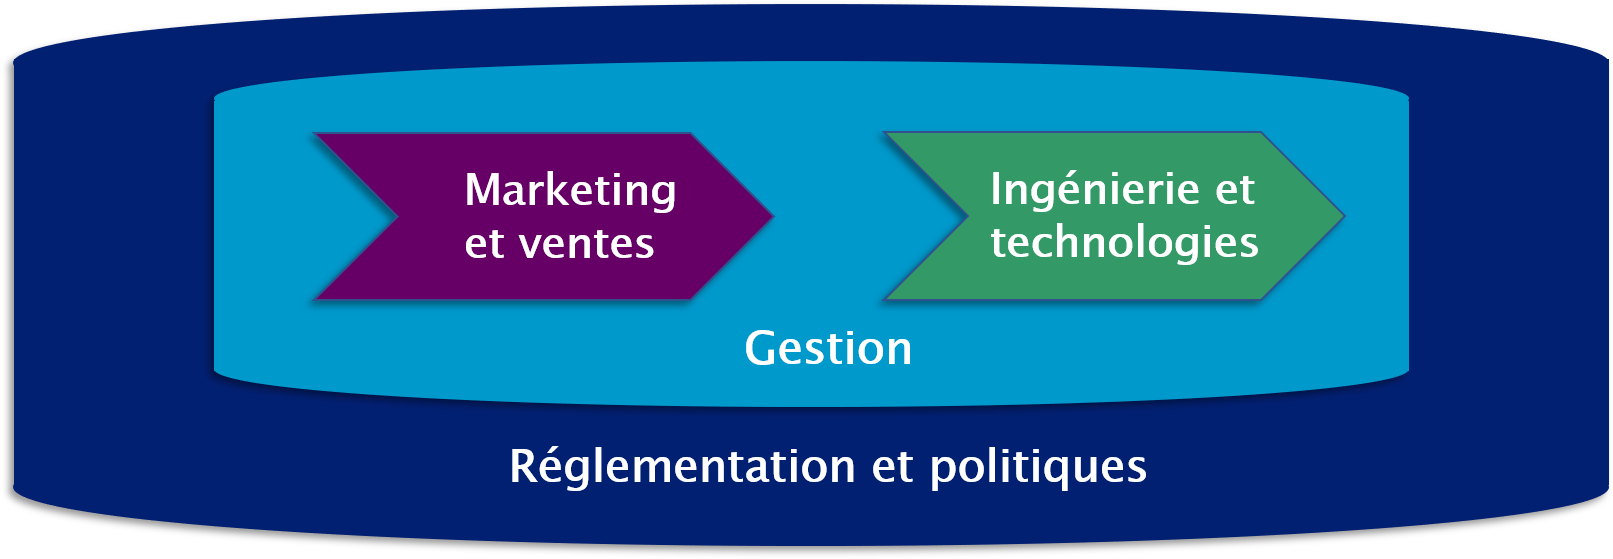 domaines expertise telecom tableau.png